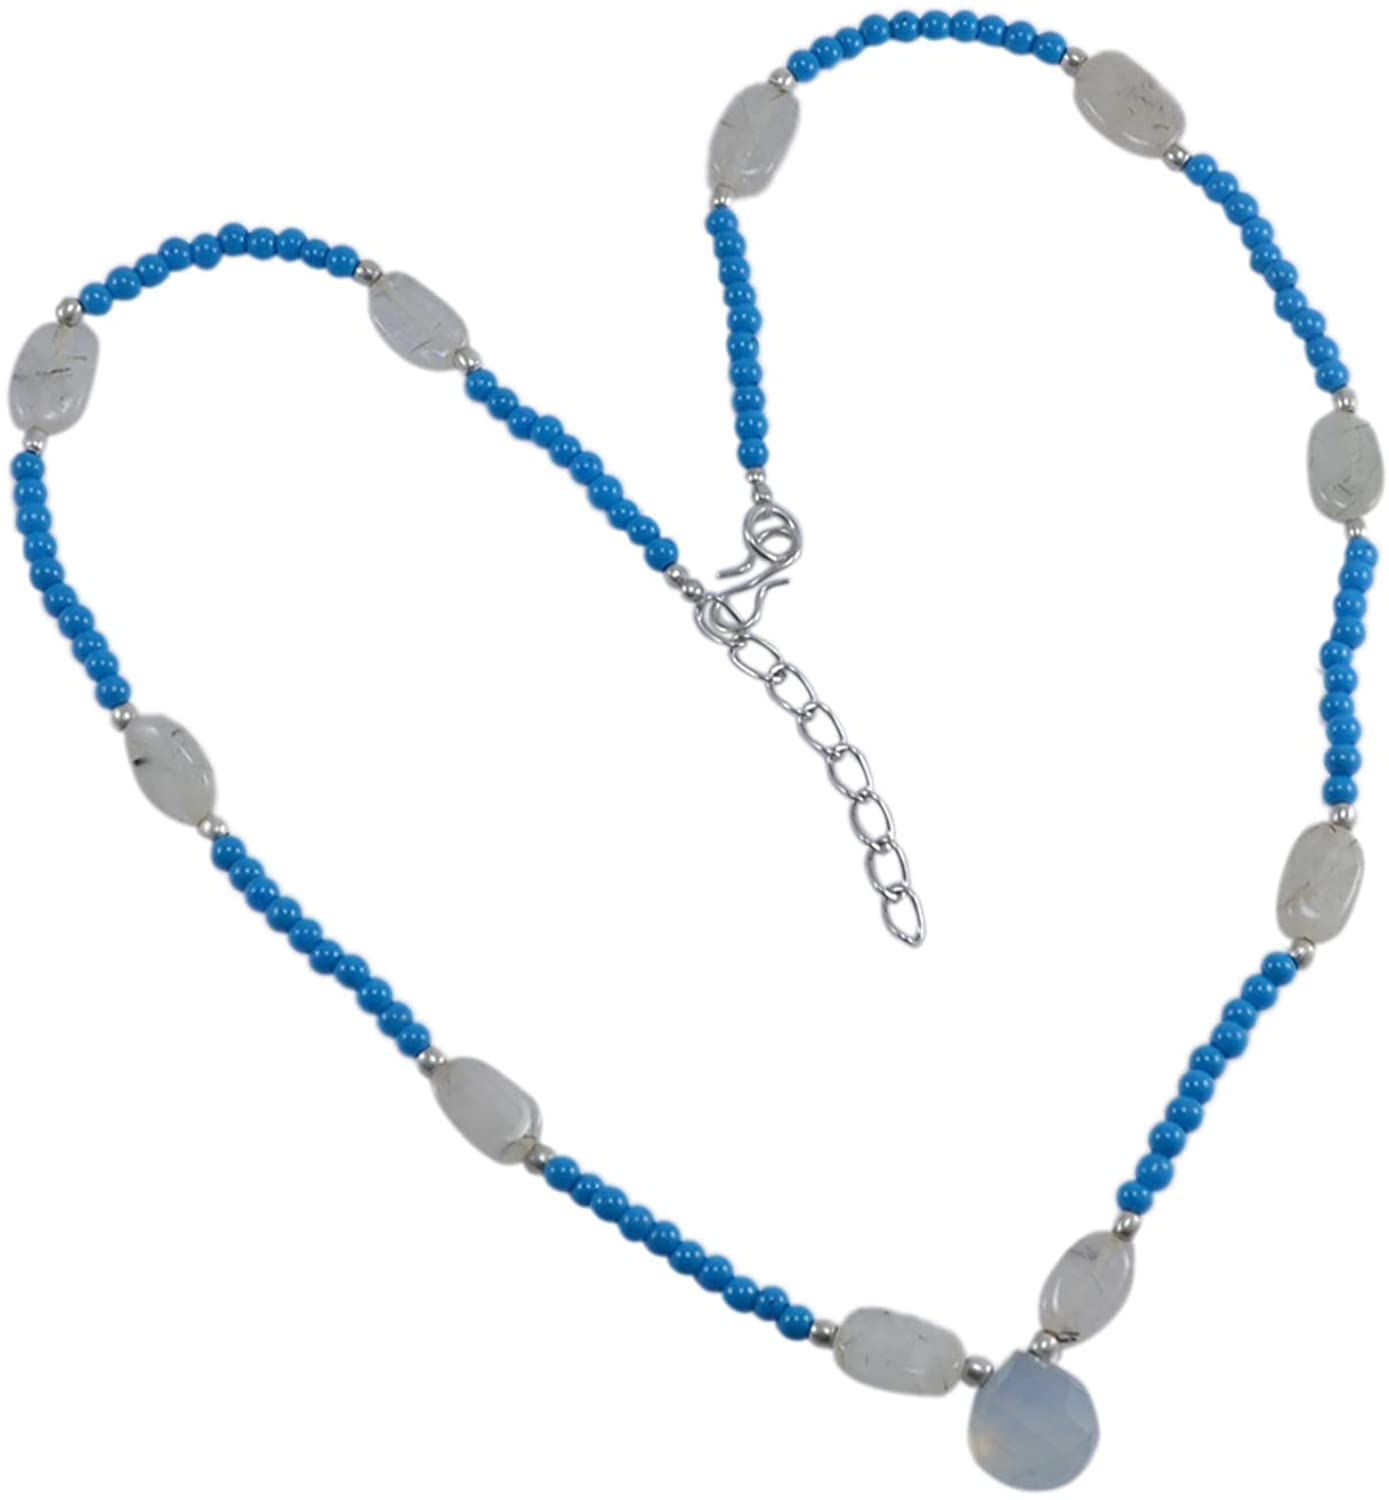 Saamarth Impex Wholesale- Handmade Jewelry Manufacturer Chalcedony, Turquoise & Quartz- 925 Silver Plated- Jaipur Rajasthan India Rolo-Chain- Necklace